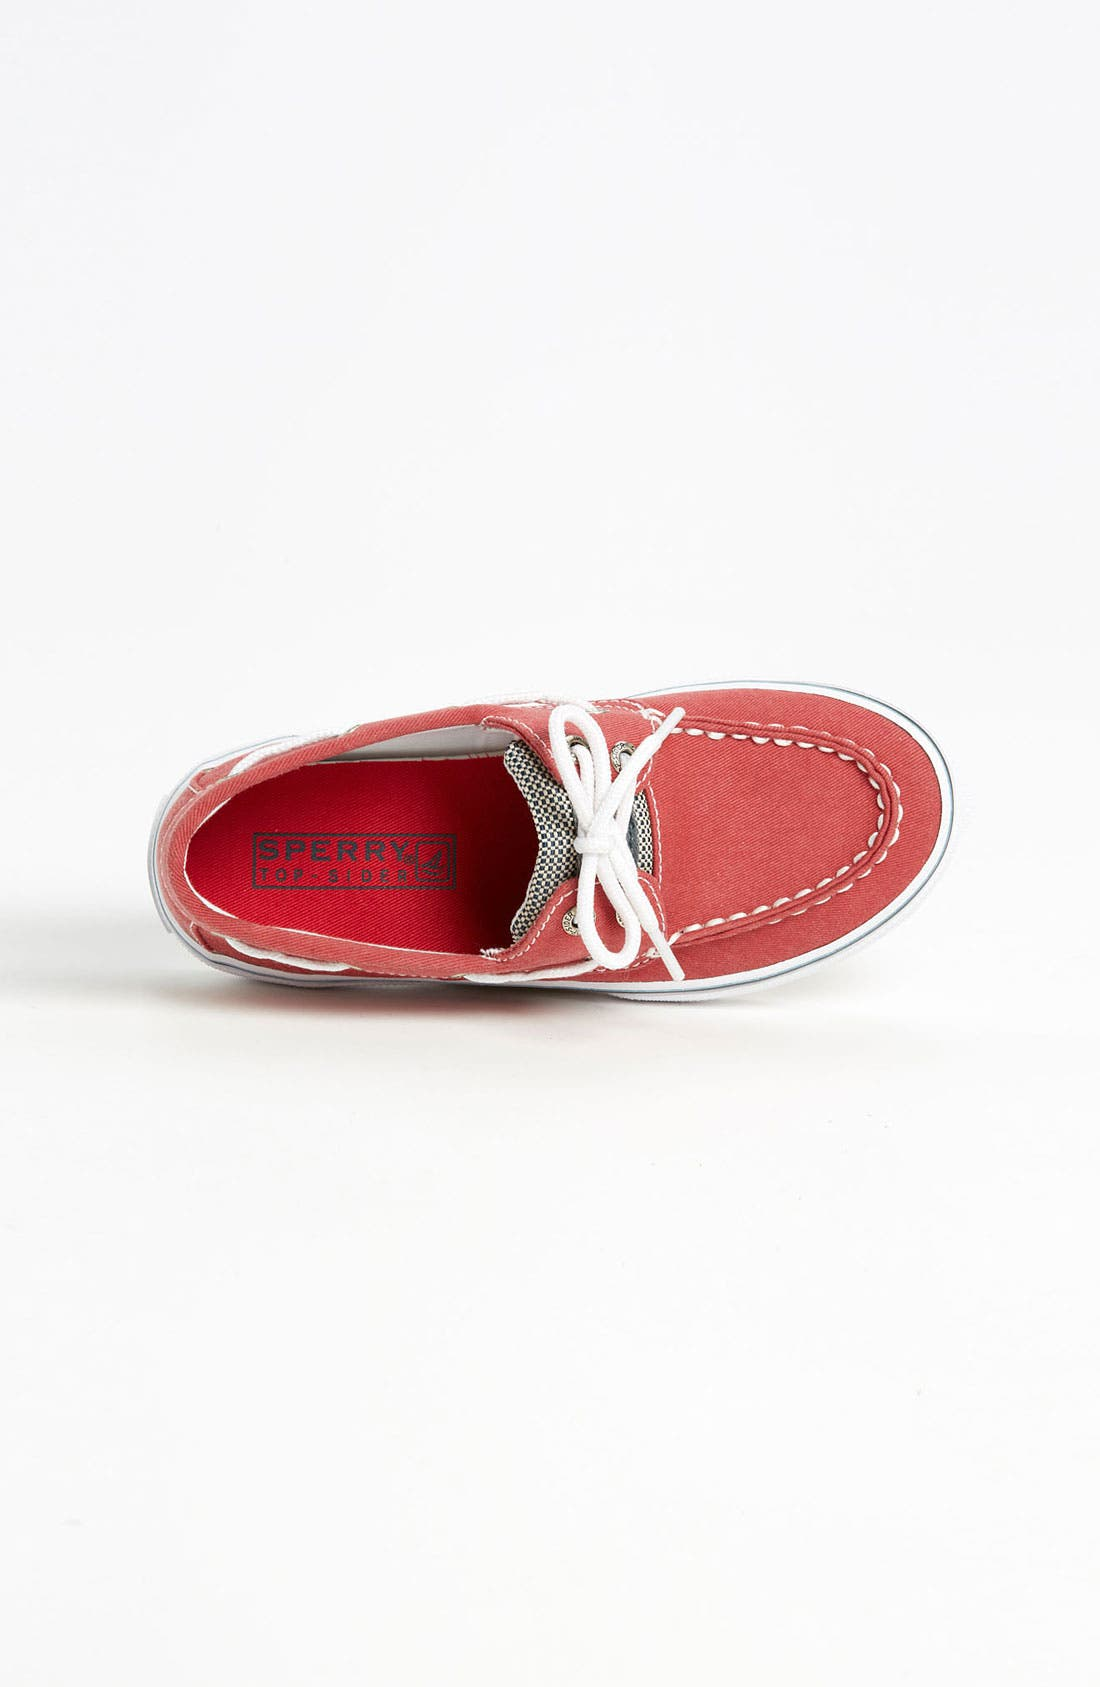 Alternate Image 3  - Sperry Top-Sider® Kids 'Halyard' Boat Shoe (Walker, Toddler, Little Kid & Big Kid)